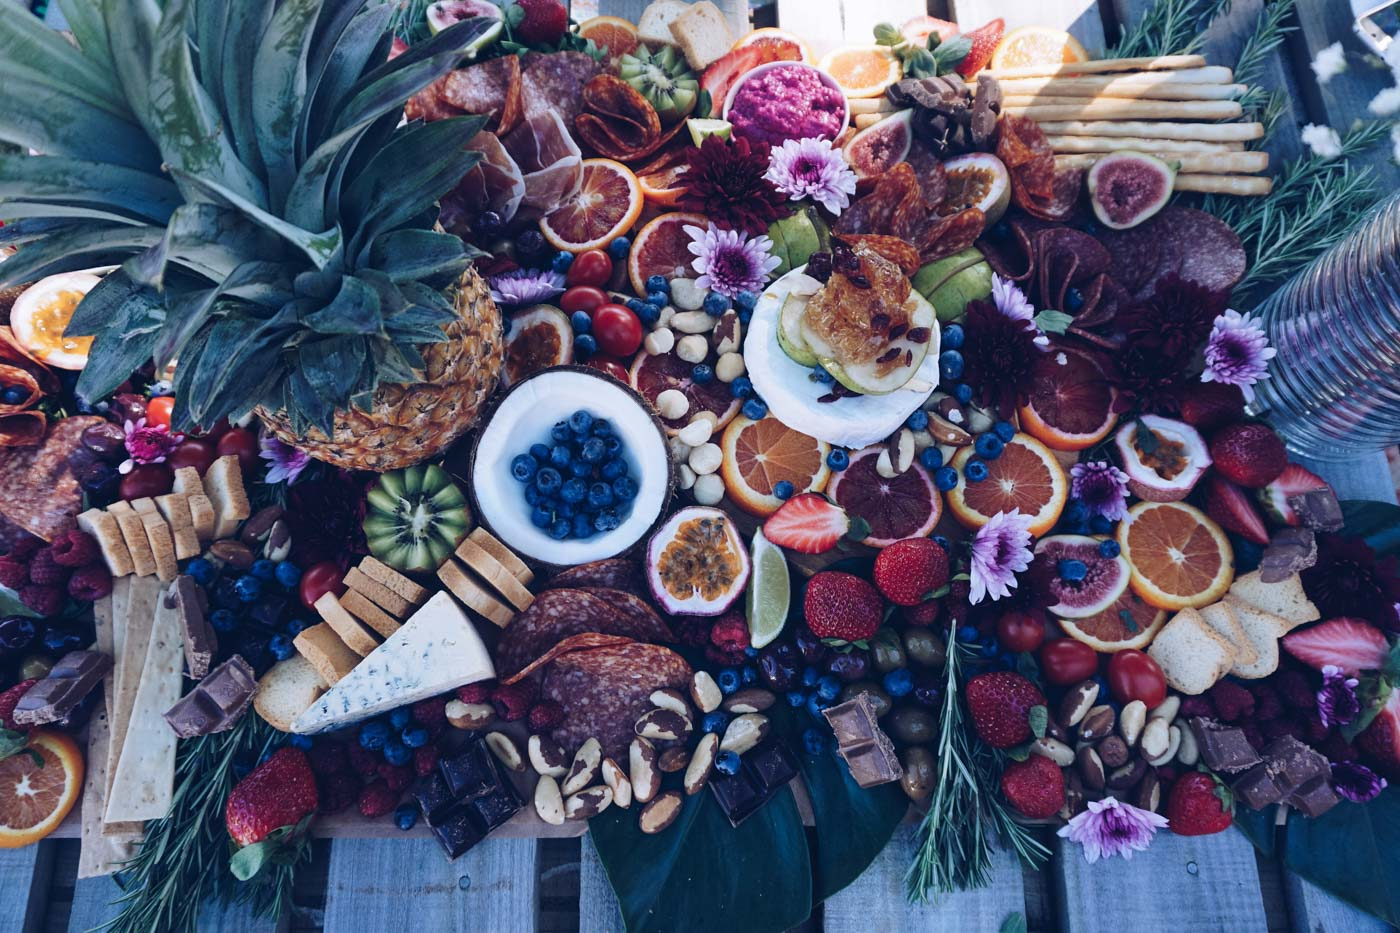 the_Collection_co_grazing_table_cairns_weddings_catering_large_platter-9-2.jpg